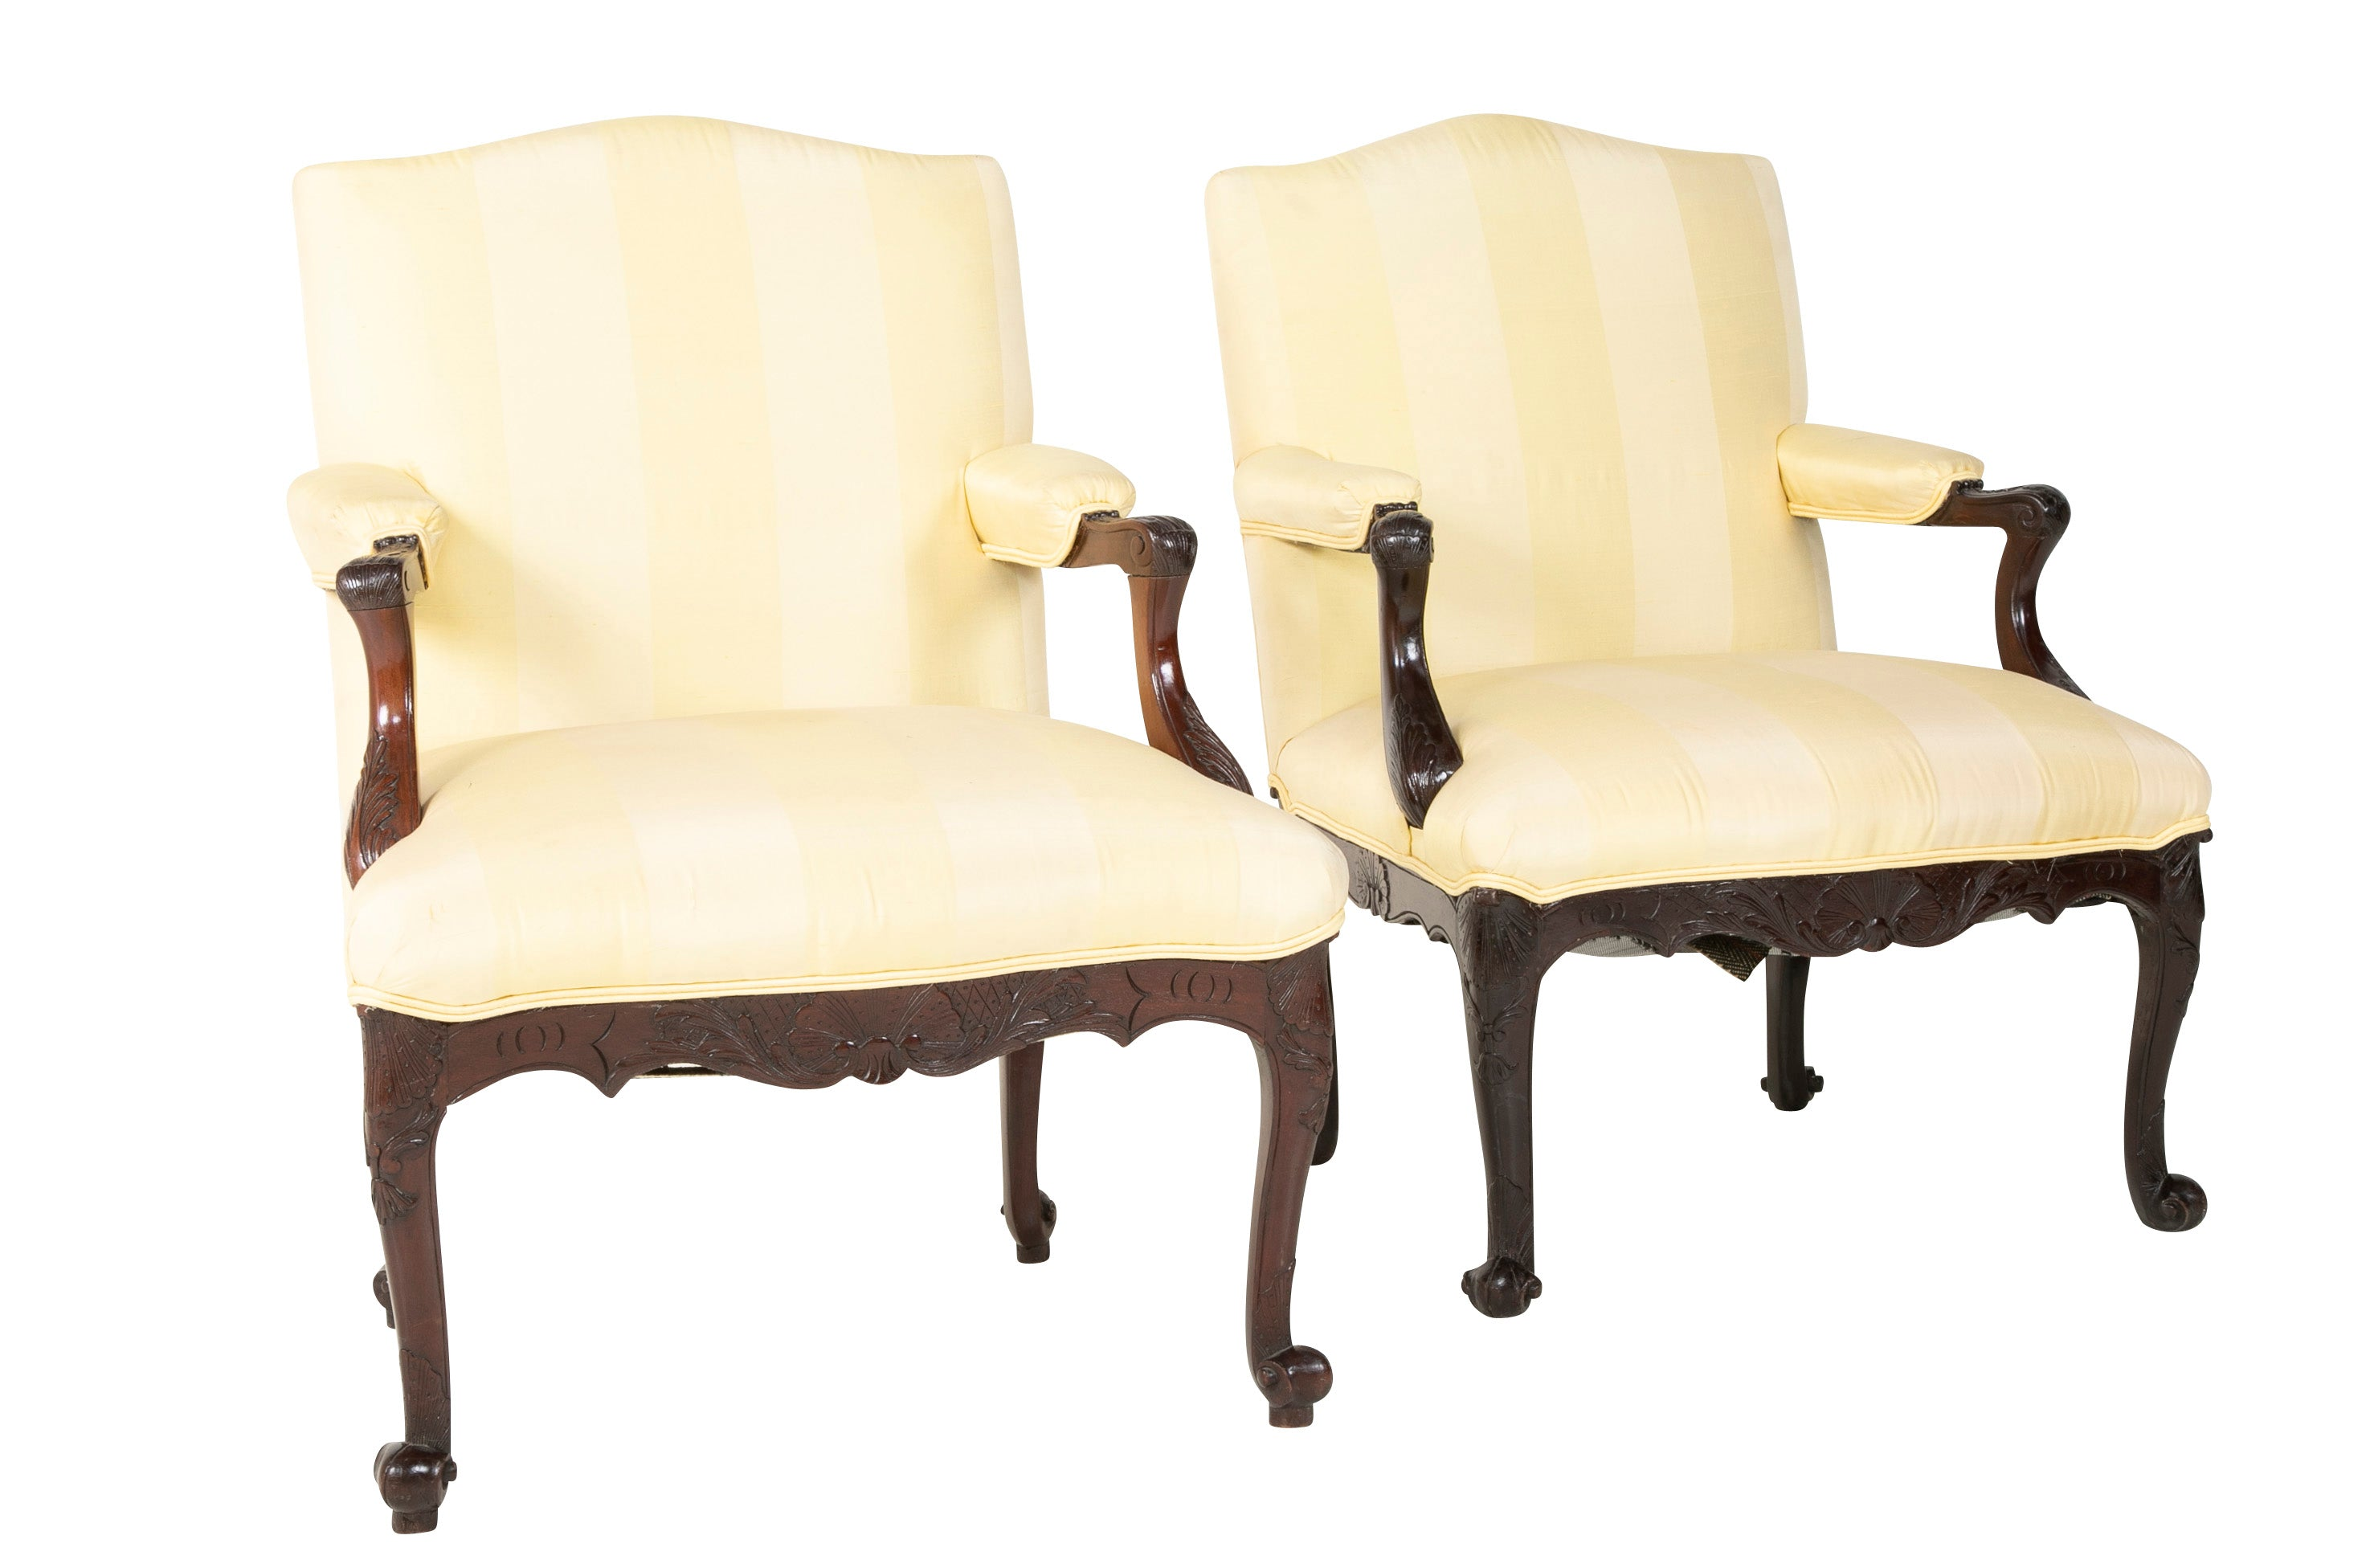 A Pair of English George III Period Library Chairs